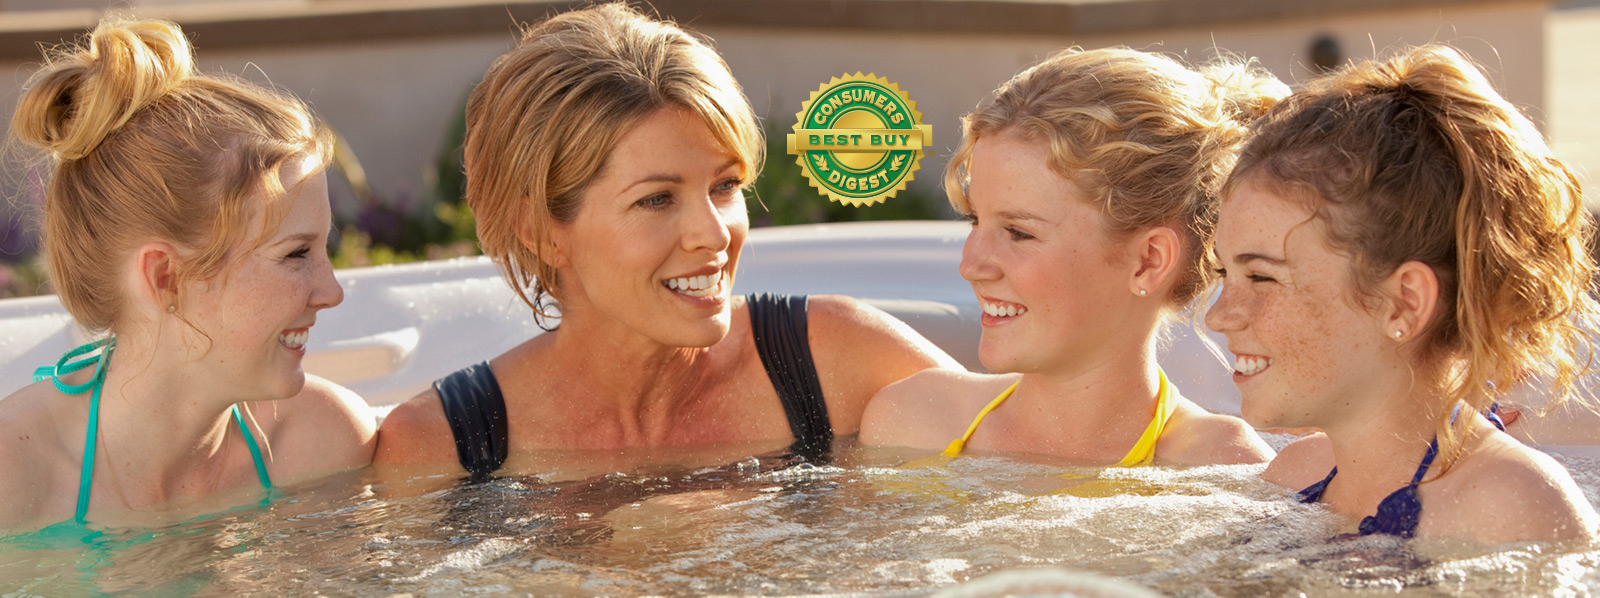 2015-Aria-5-person-hot-tub-1600x598